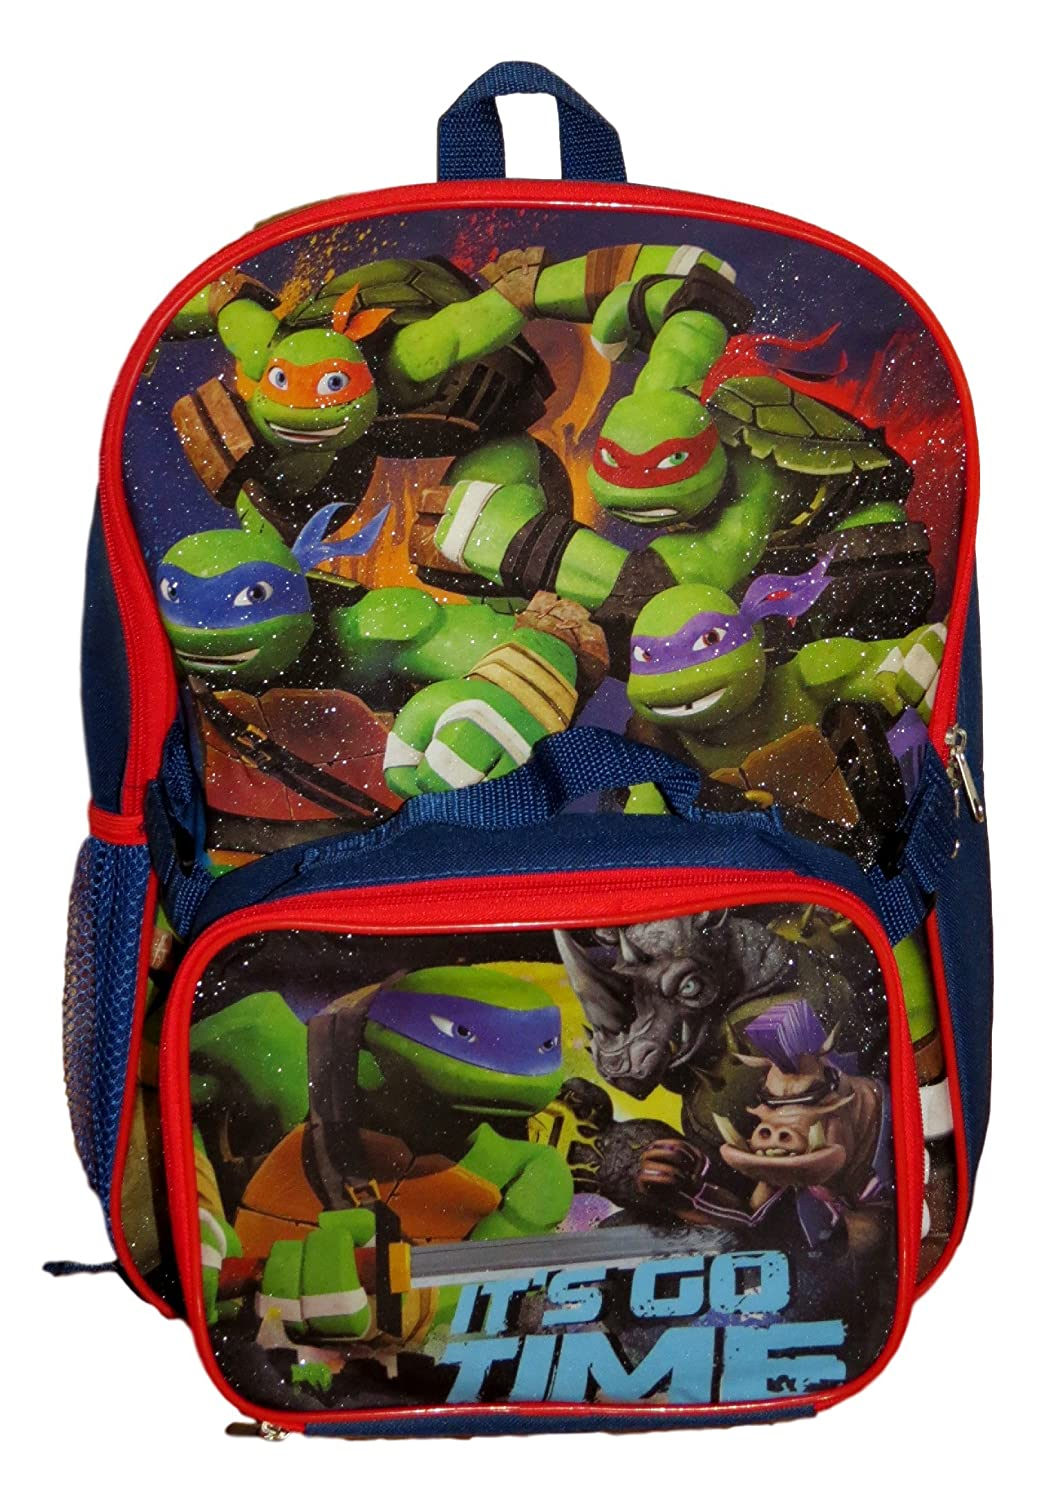 TMNT Ninja Turtles Hit the Streets Backpack with Detachable Insulated Lunch Box